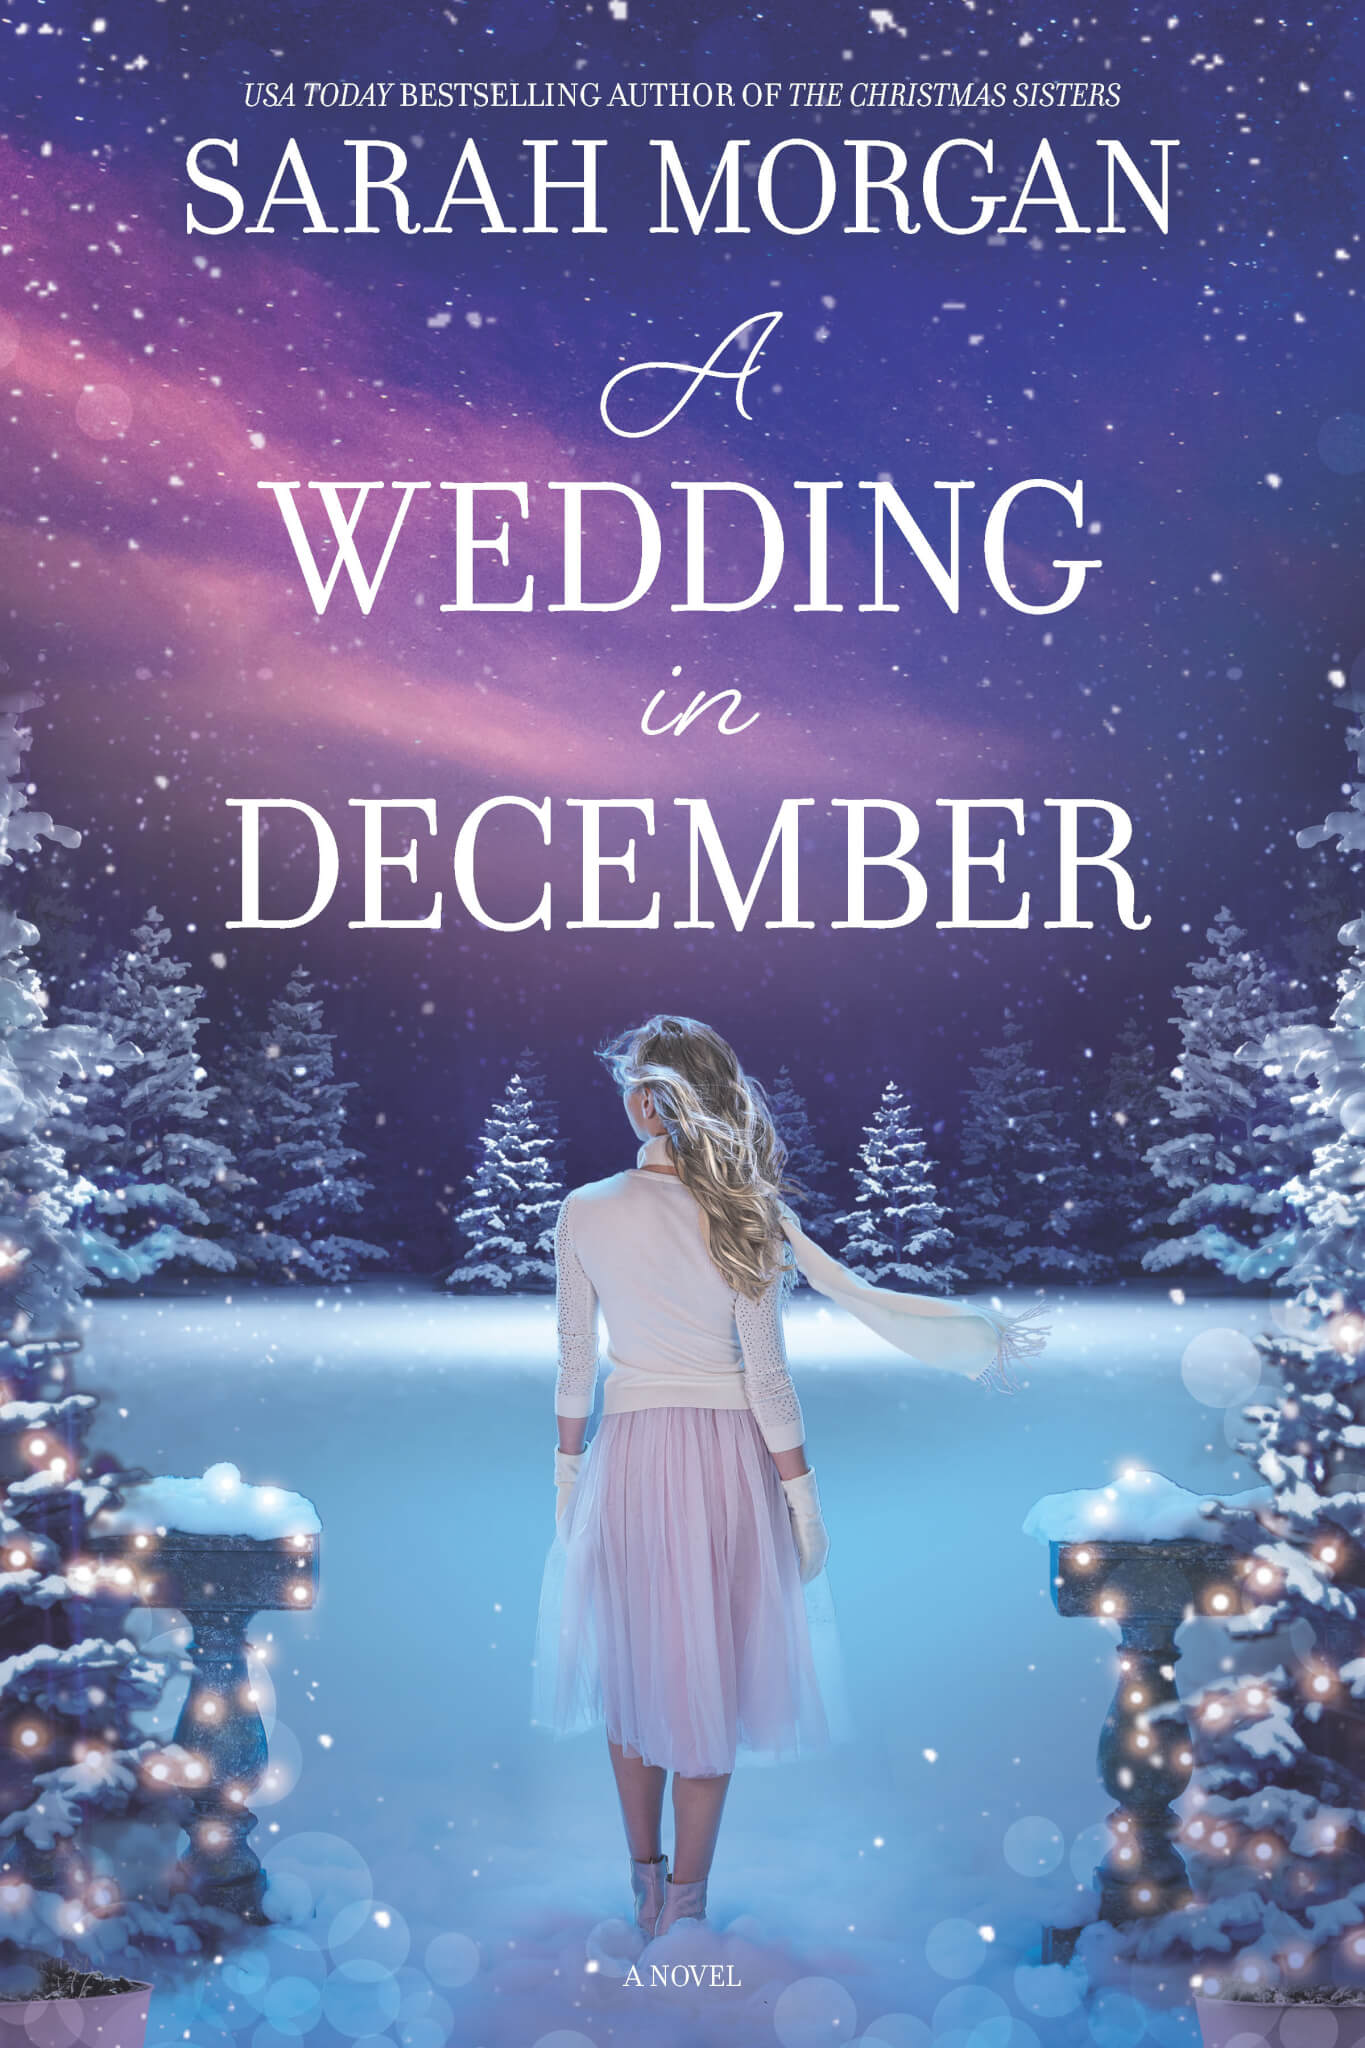 A Wedding in December: A Christmas Novel by Sarah Morgan